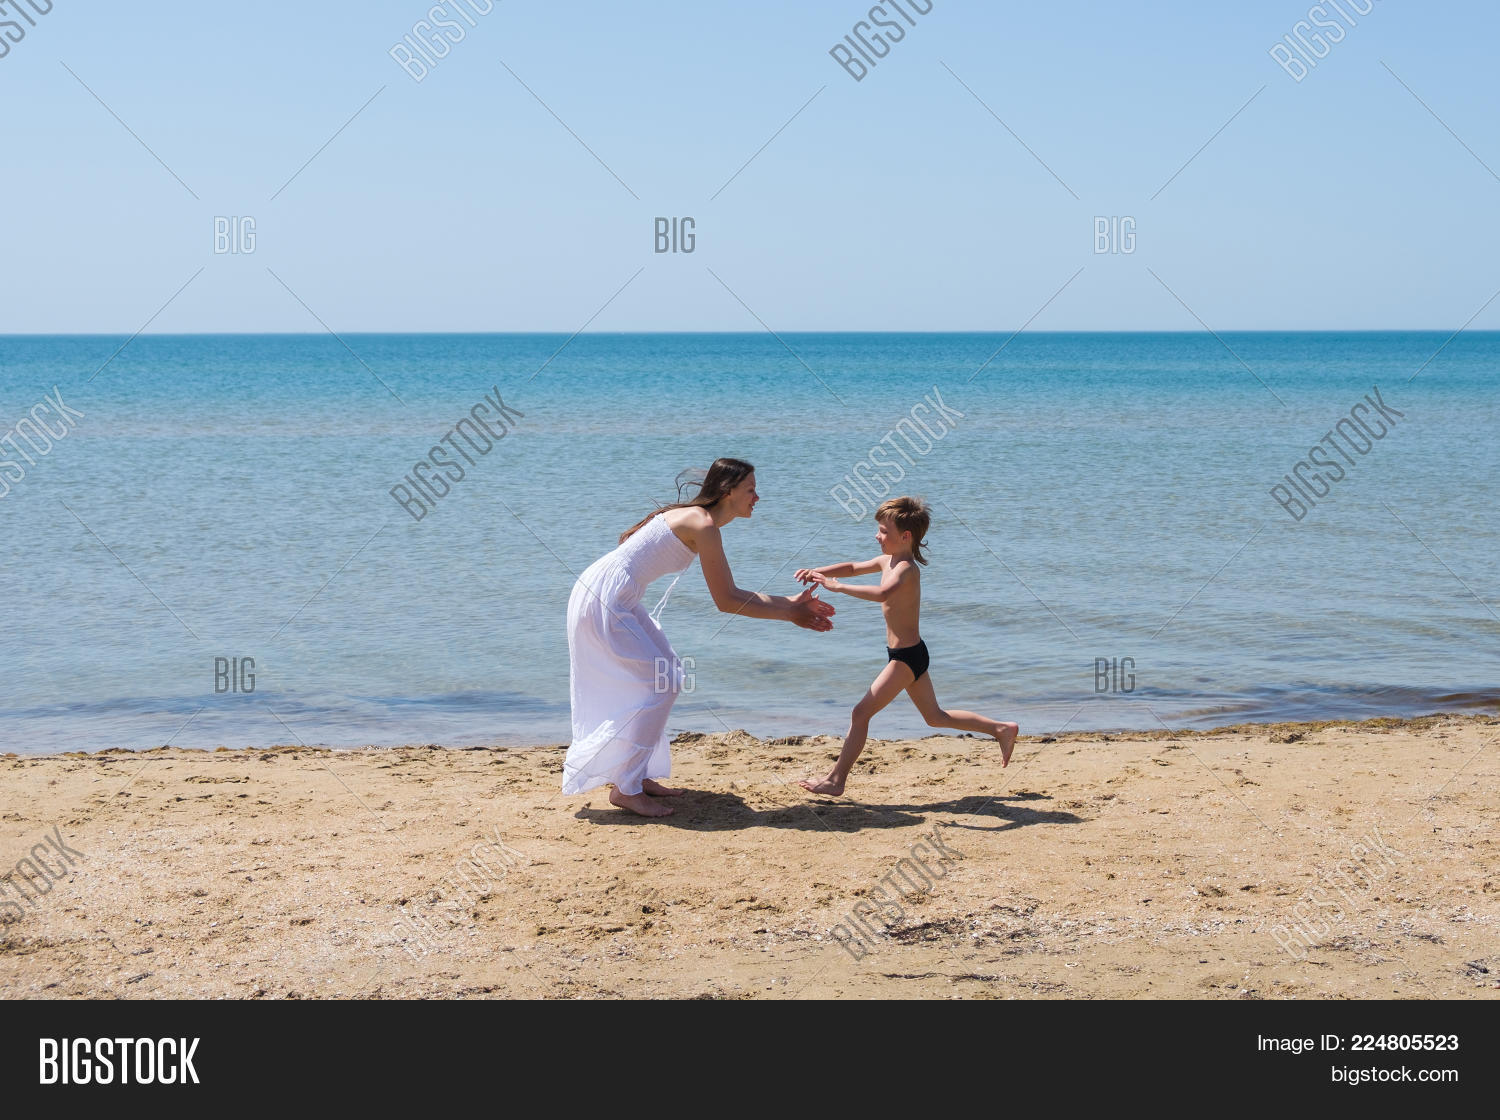 A Boy In A Black Speedo Running To Mom Brunette In A White Dress On The